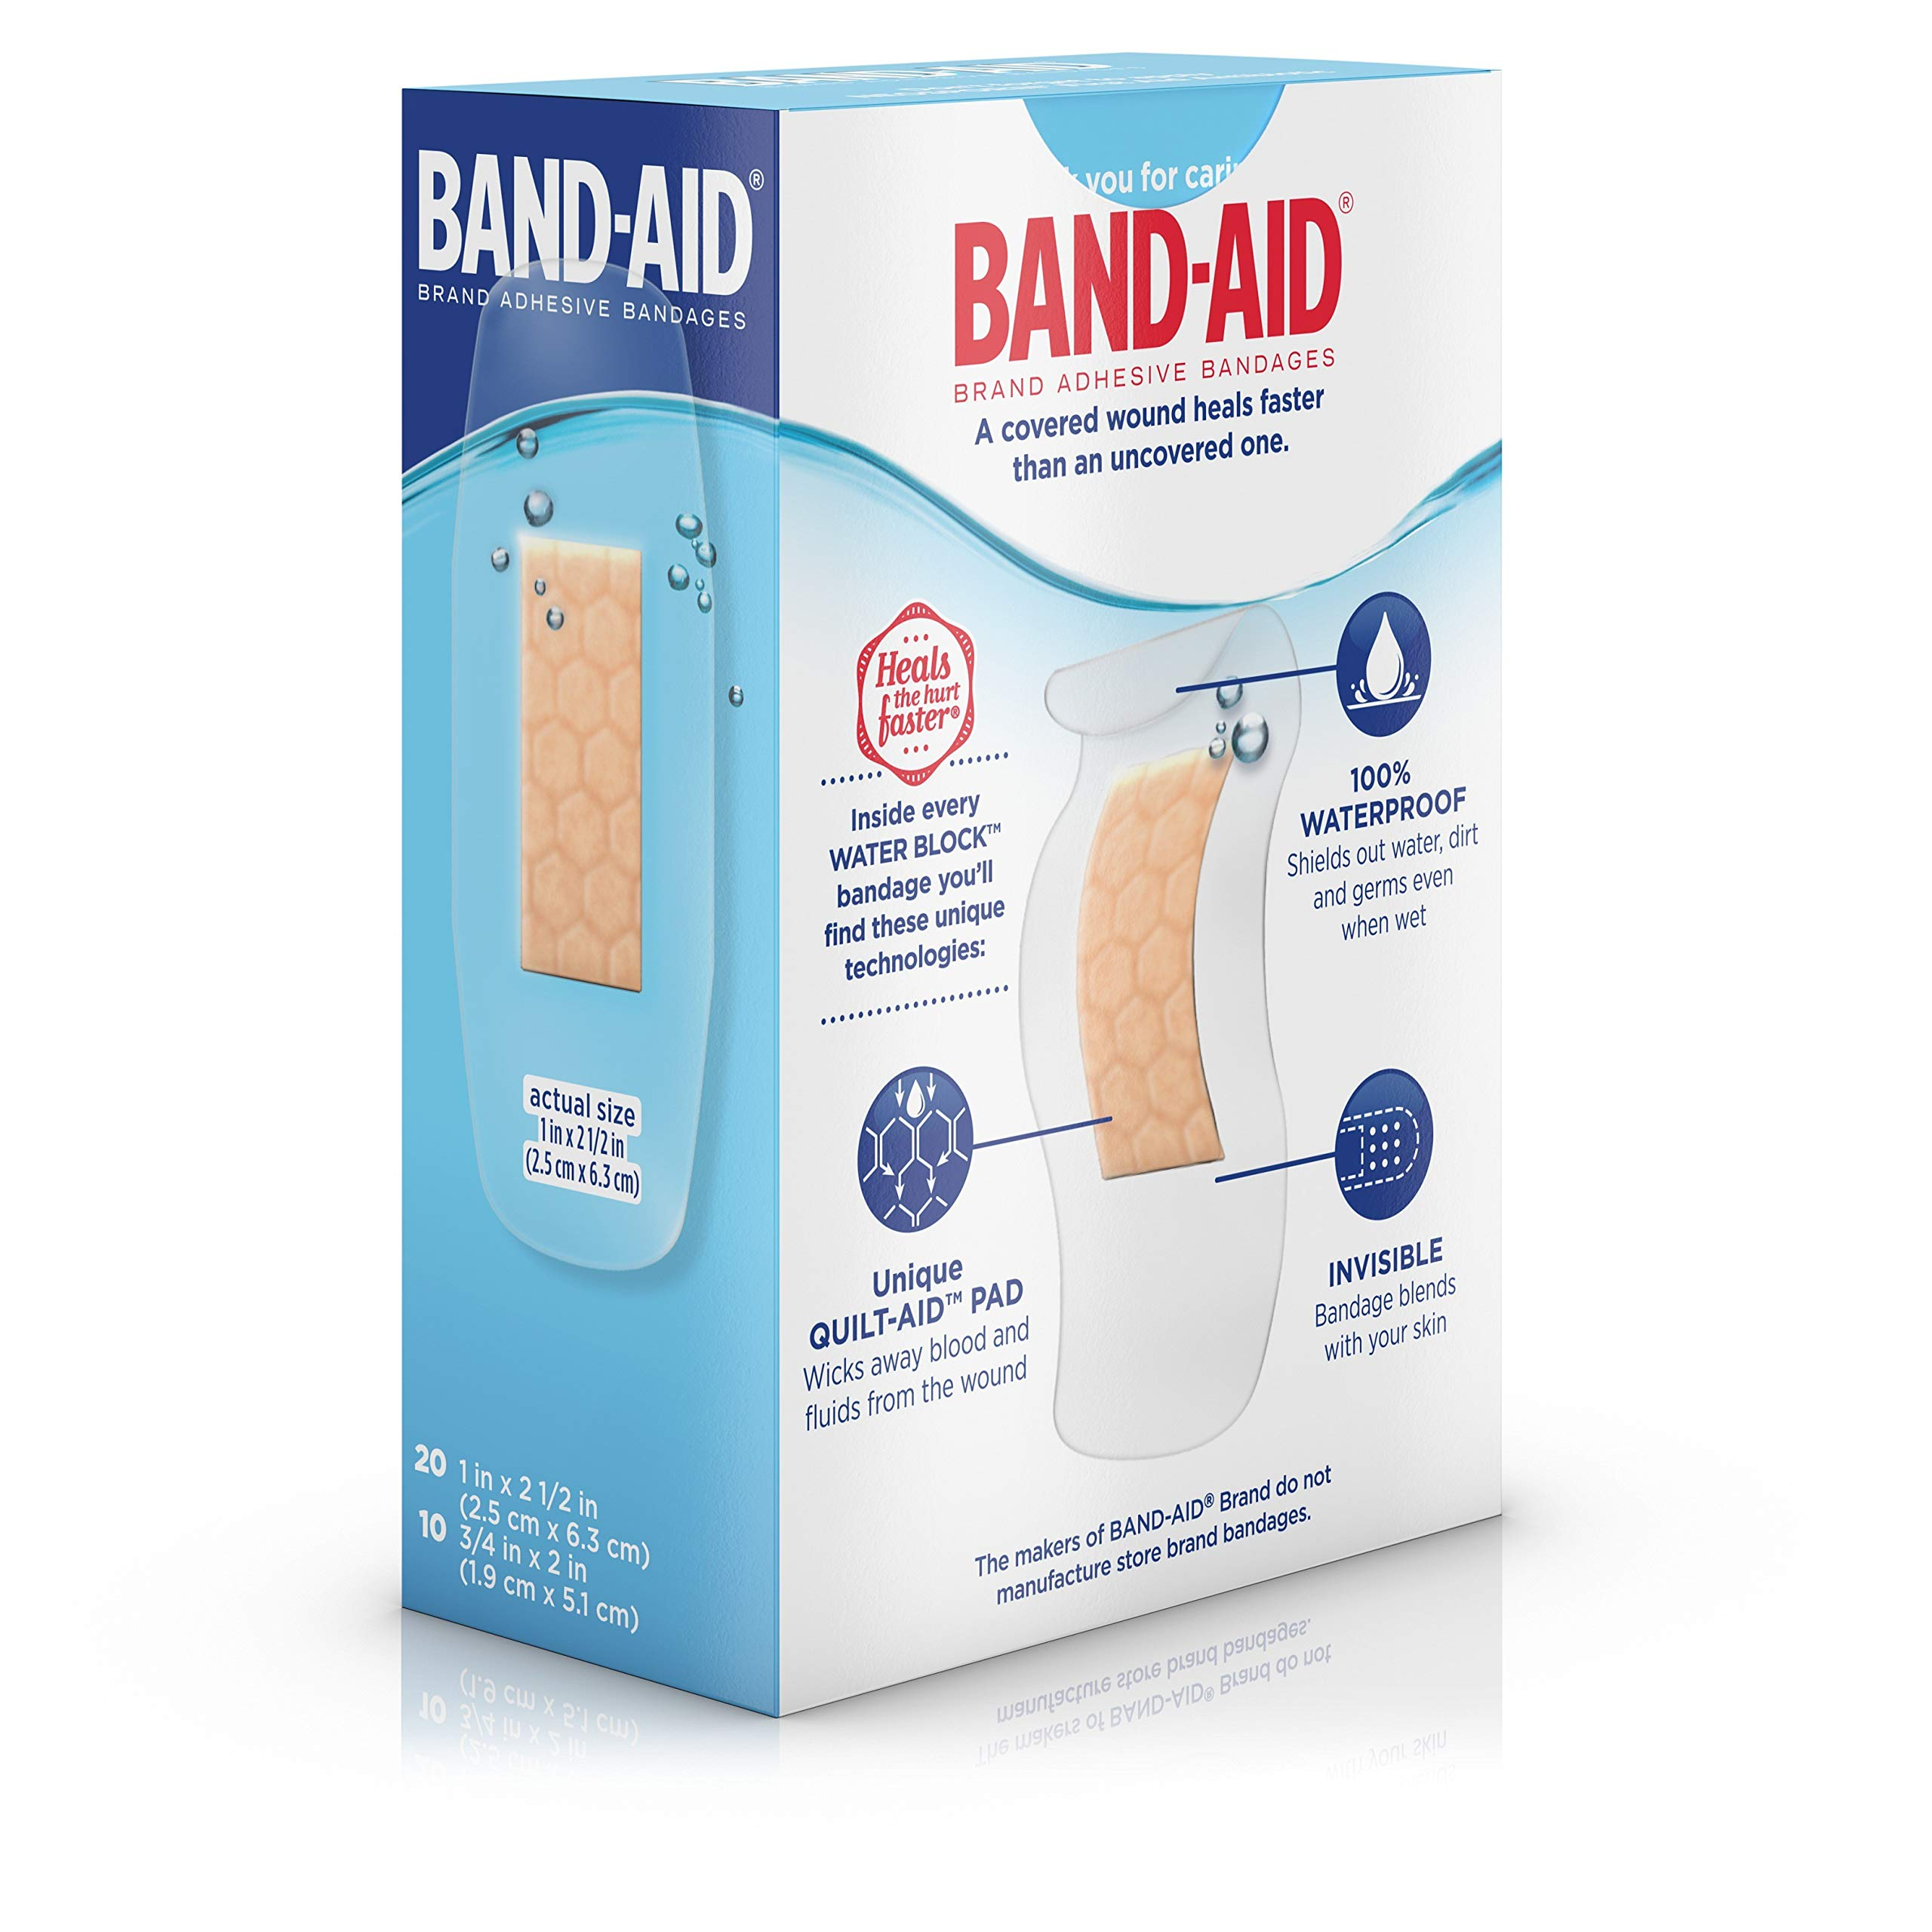 Band-Aid Brand Water Block Plus Waterproof Clear Adhesive Bandages for Minor Cuts and Scrapes, 30 ct (6 Pack) by Band-Aid (Image #12)